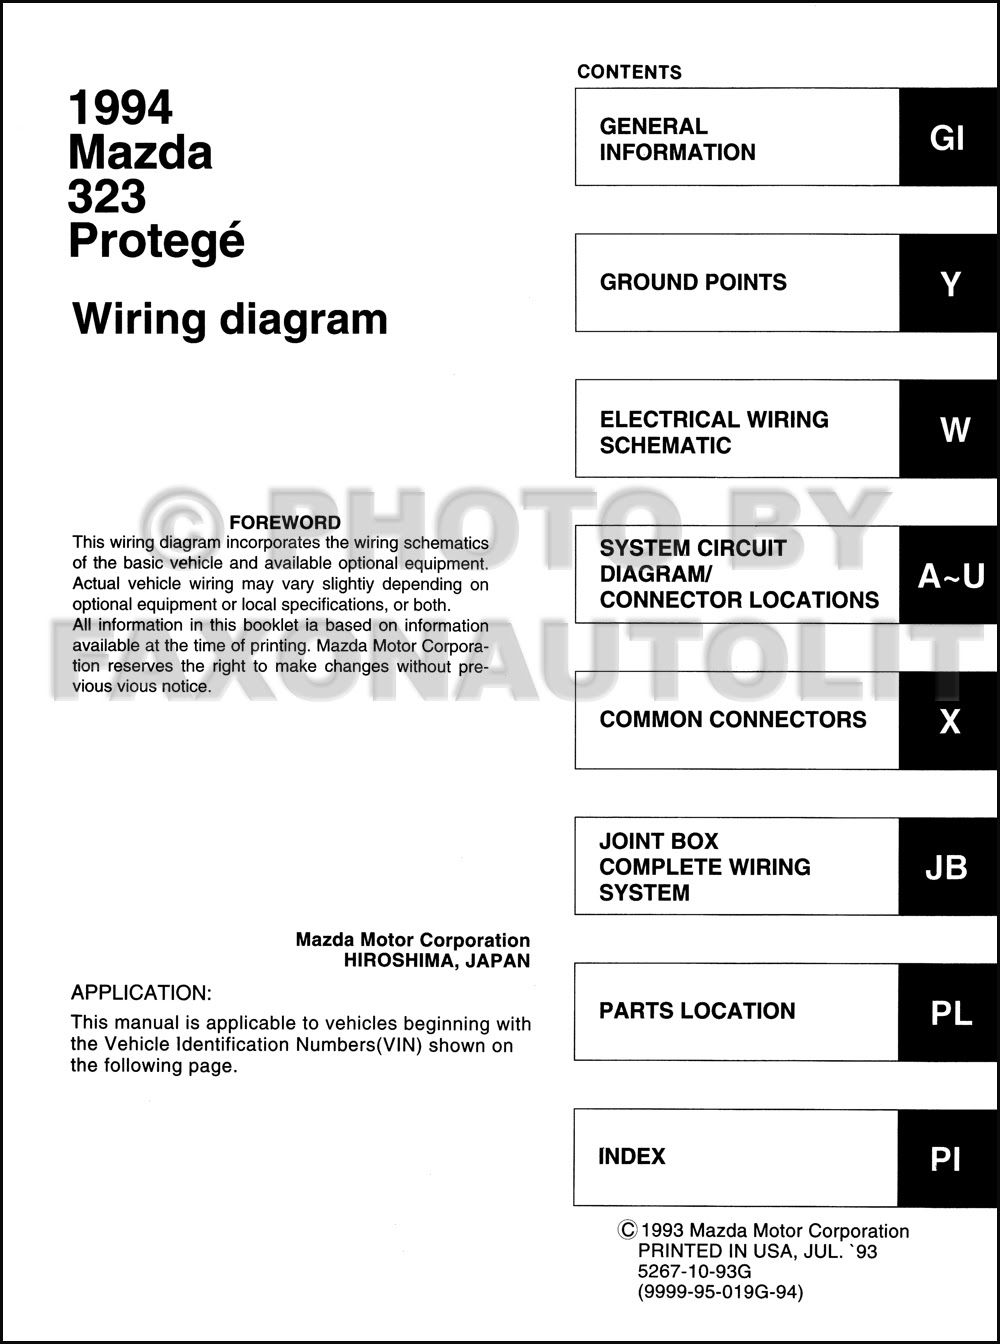 Diagram 1997 Mazda Protege Wiring Diagram Original Full Version Hd Quality Diagram Original Kwikwiringx29 Locandadossello It